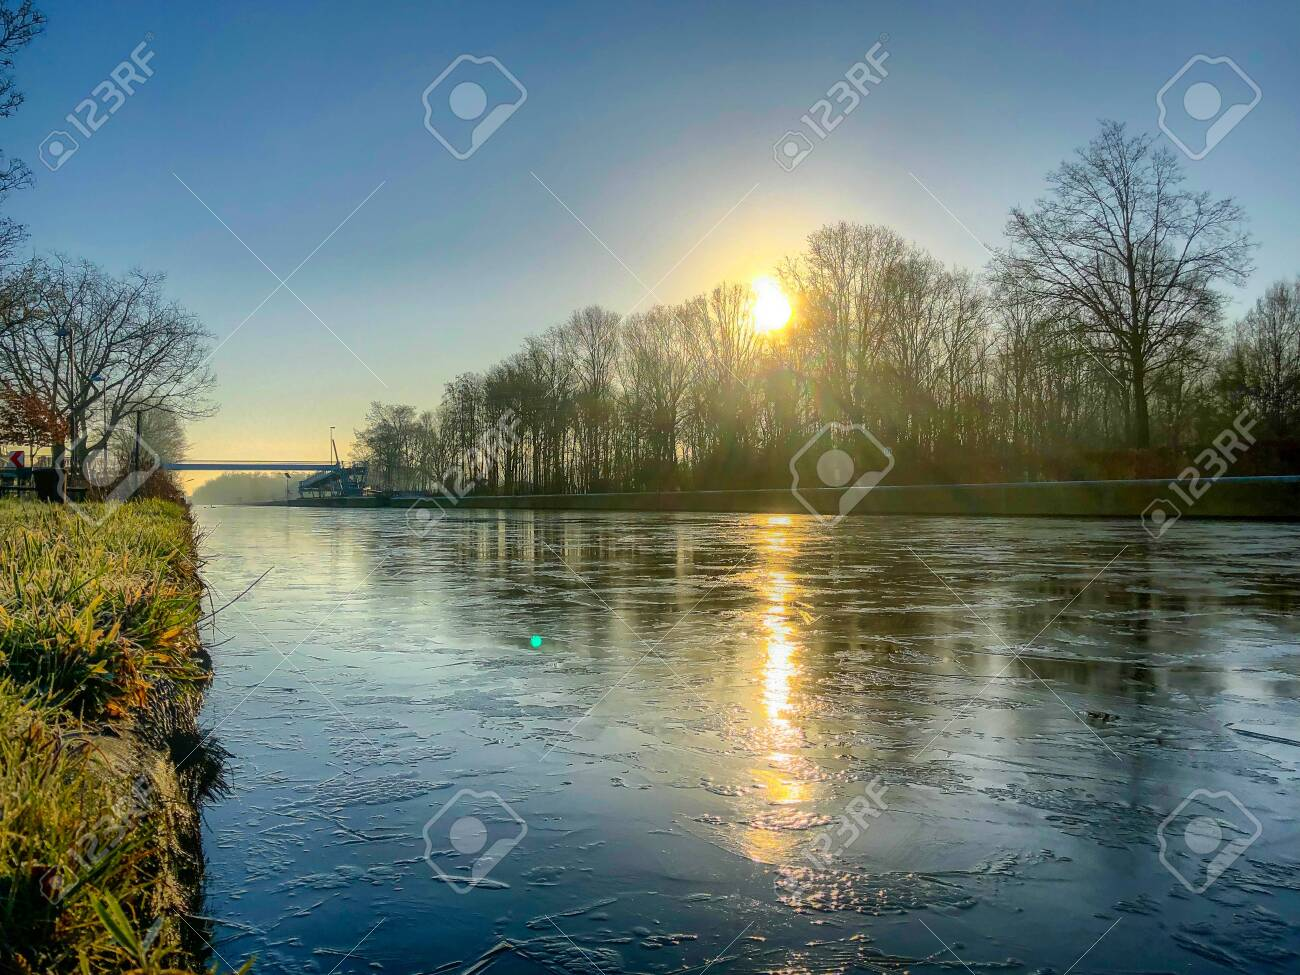 Dramatic and colorful sunrise or sunset over a beautiful landscape with a river or canal, treelined riverside and grass at sunrise creating a tranquile and quiet scenic nature background - 120944887